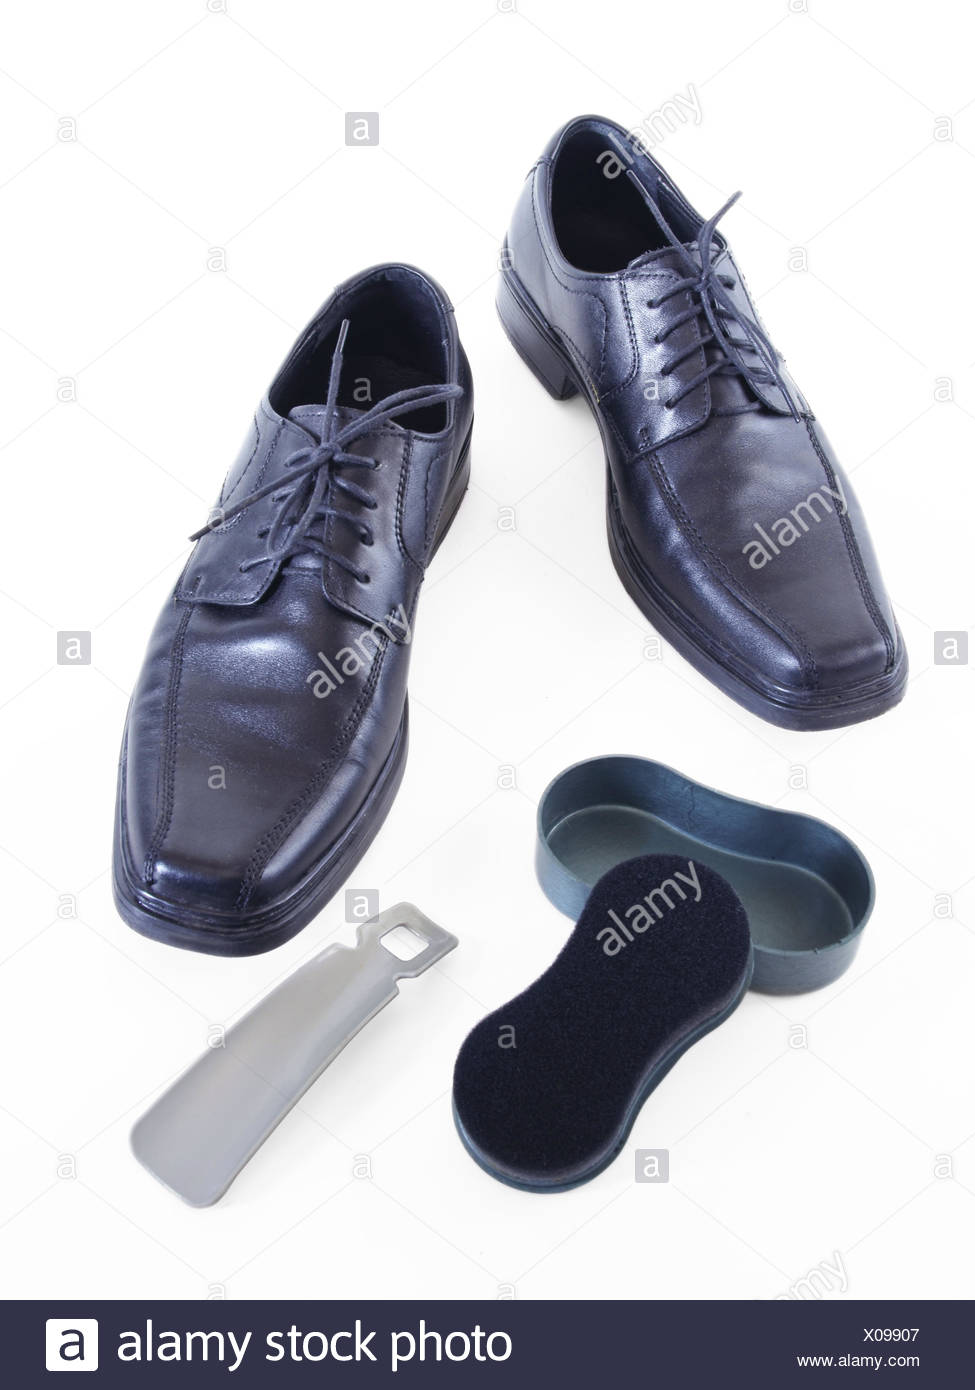 Male shoes and accessories for footwear Stock Photo